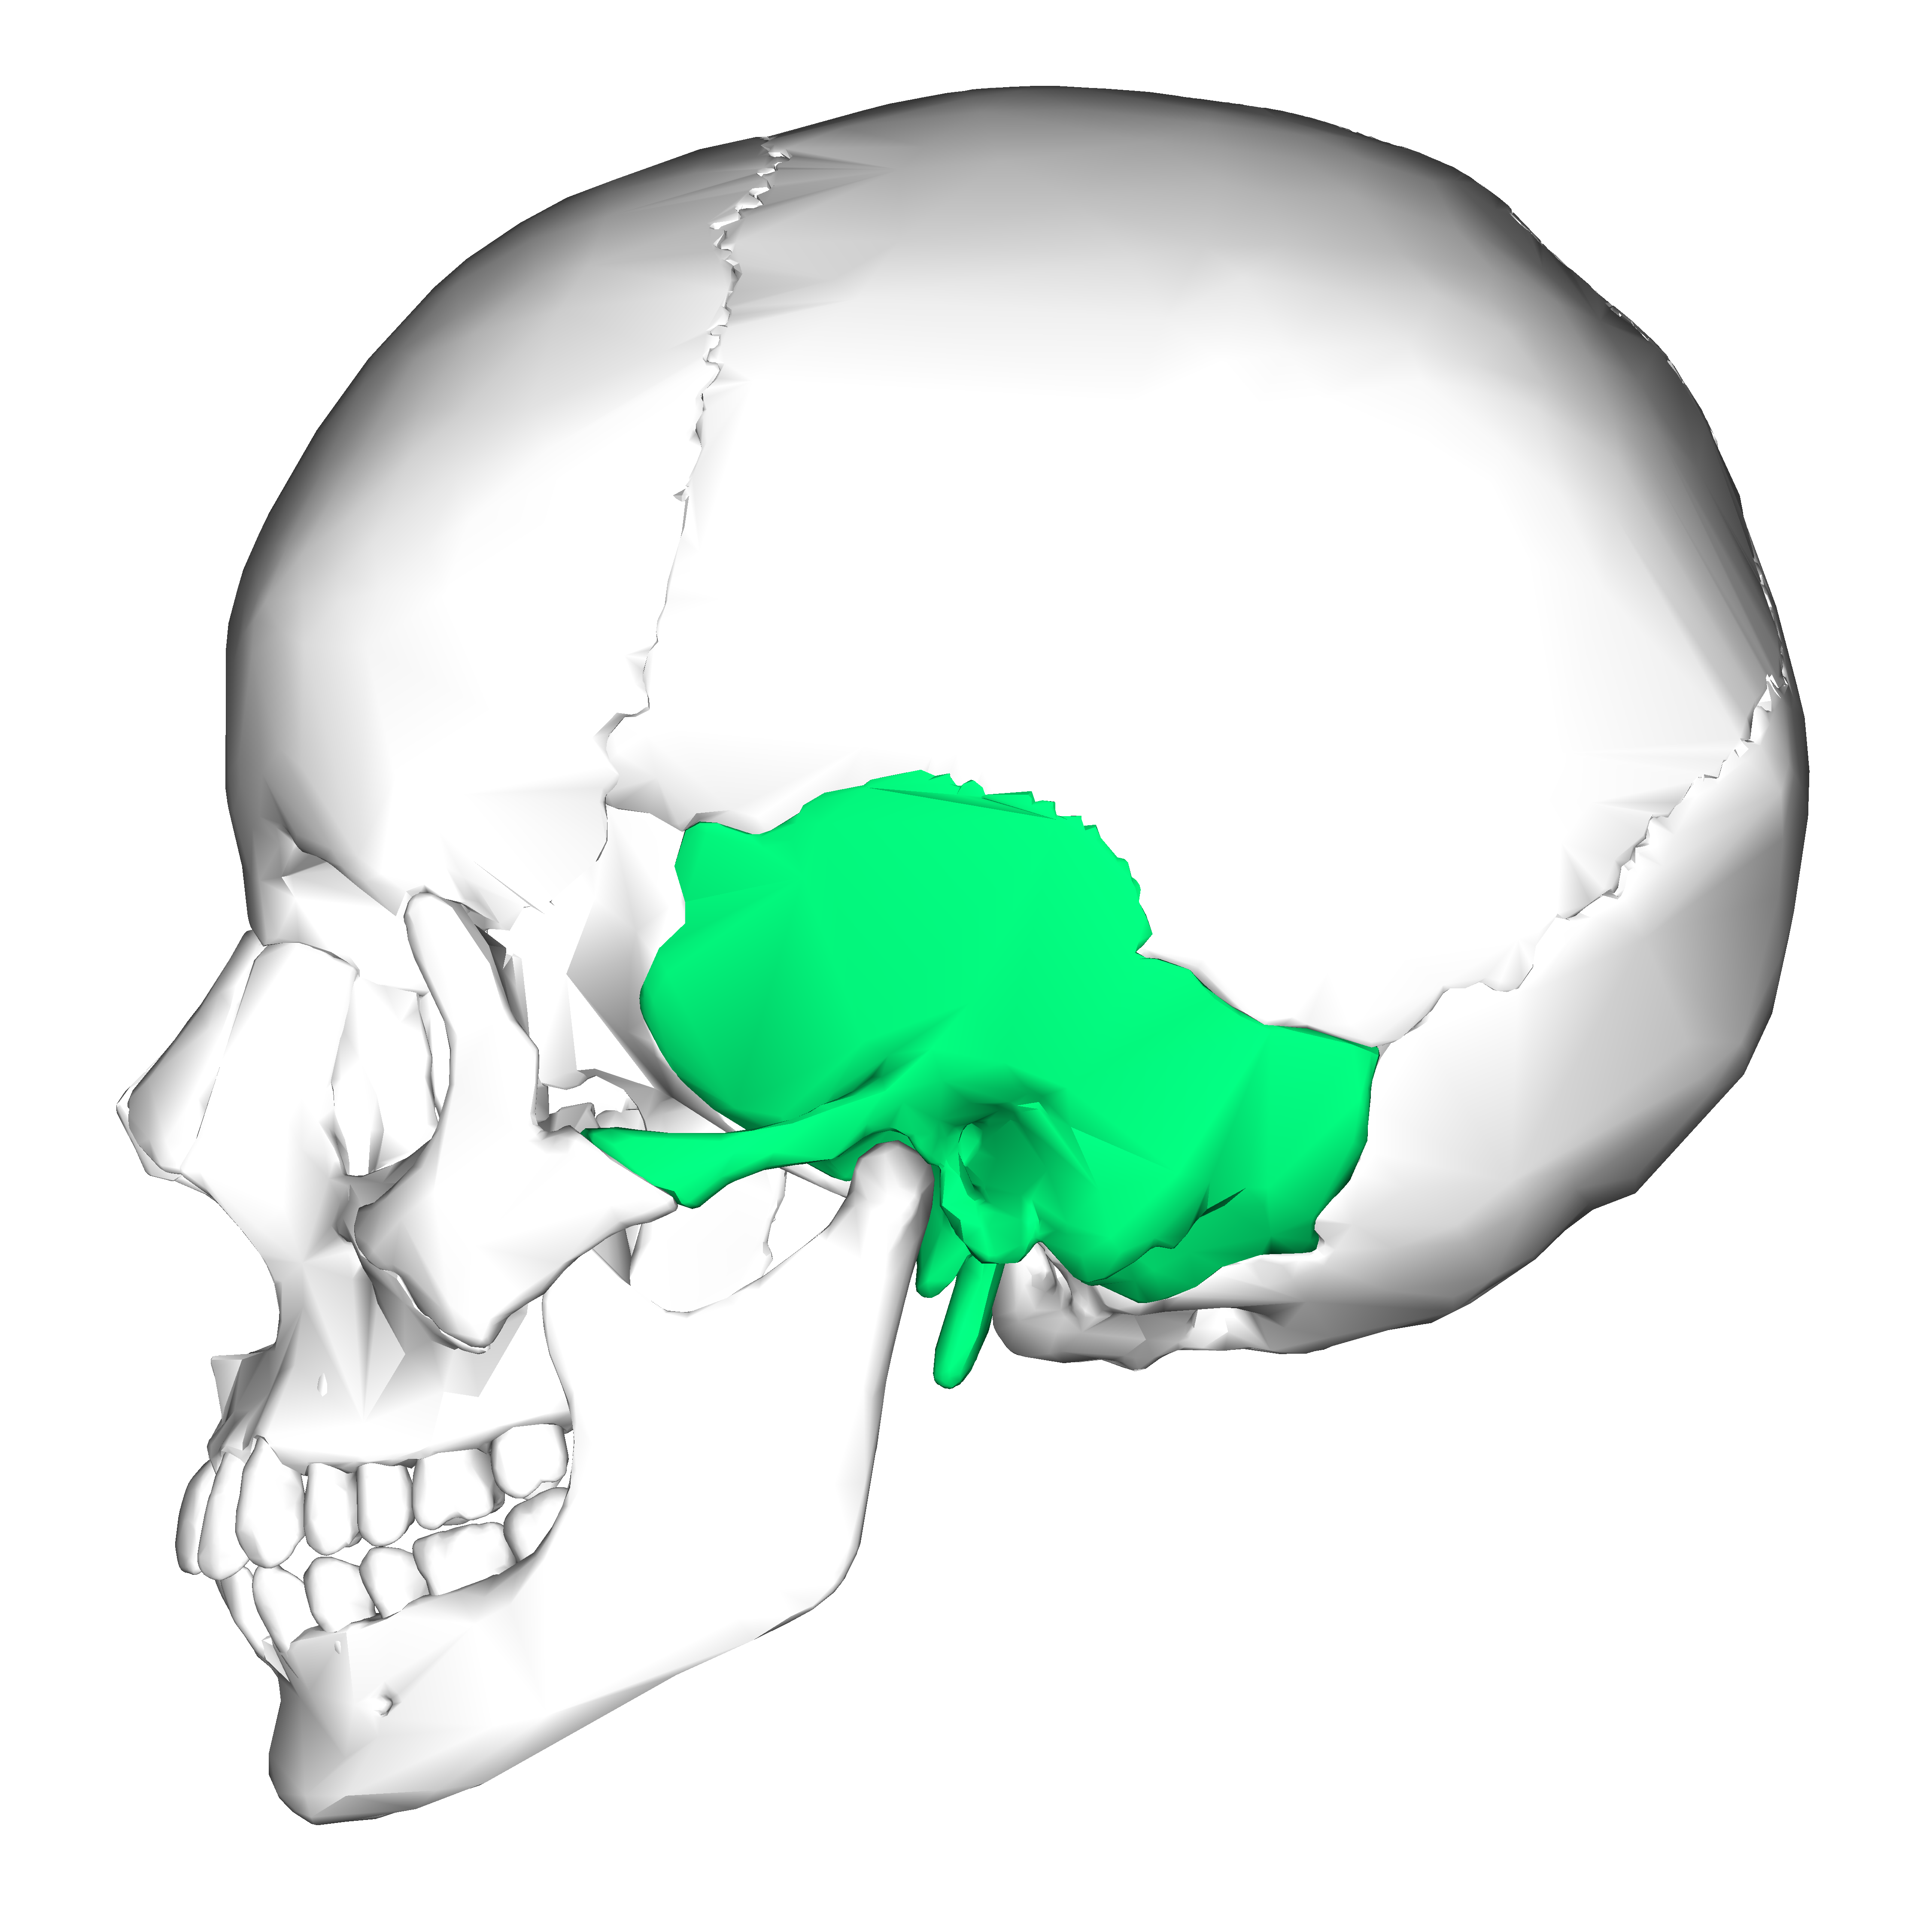 File:Temporal bone lateral5.png - Wikimedia Commons